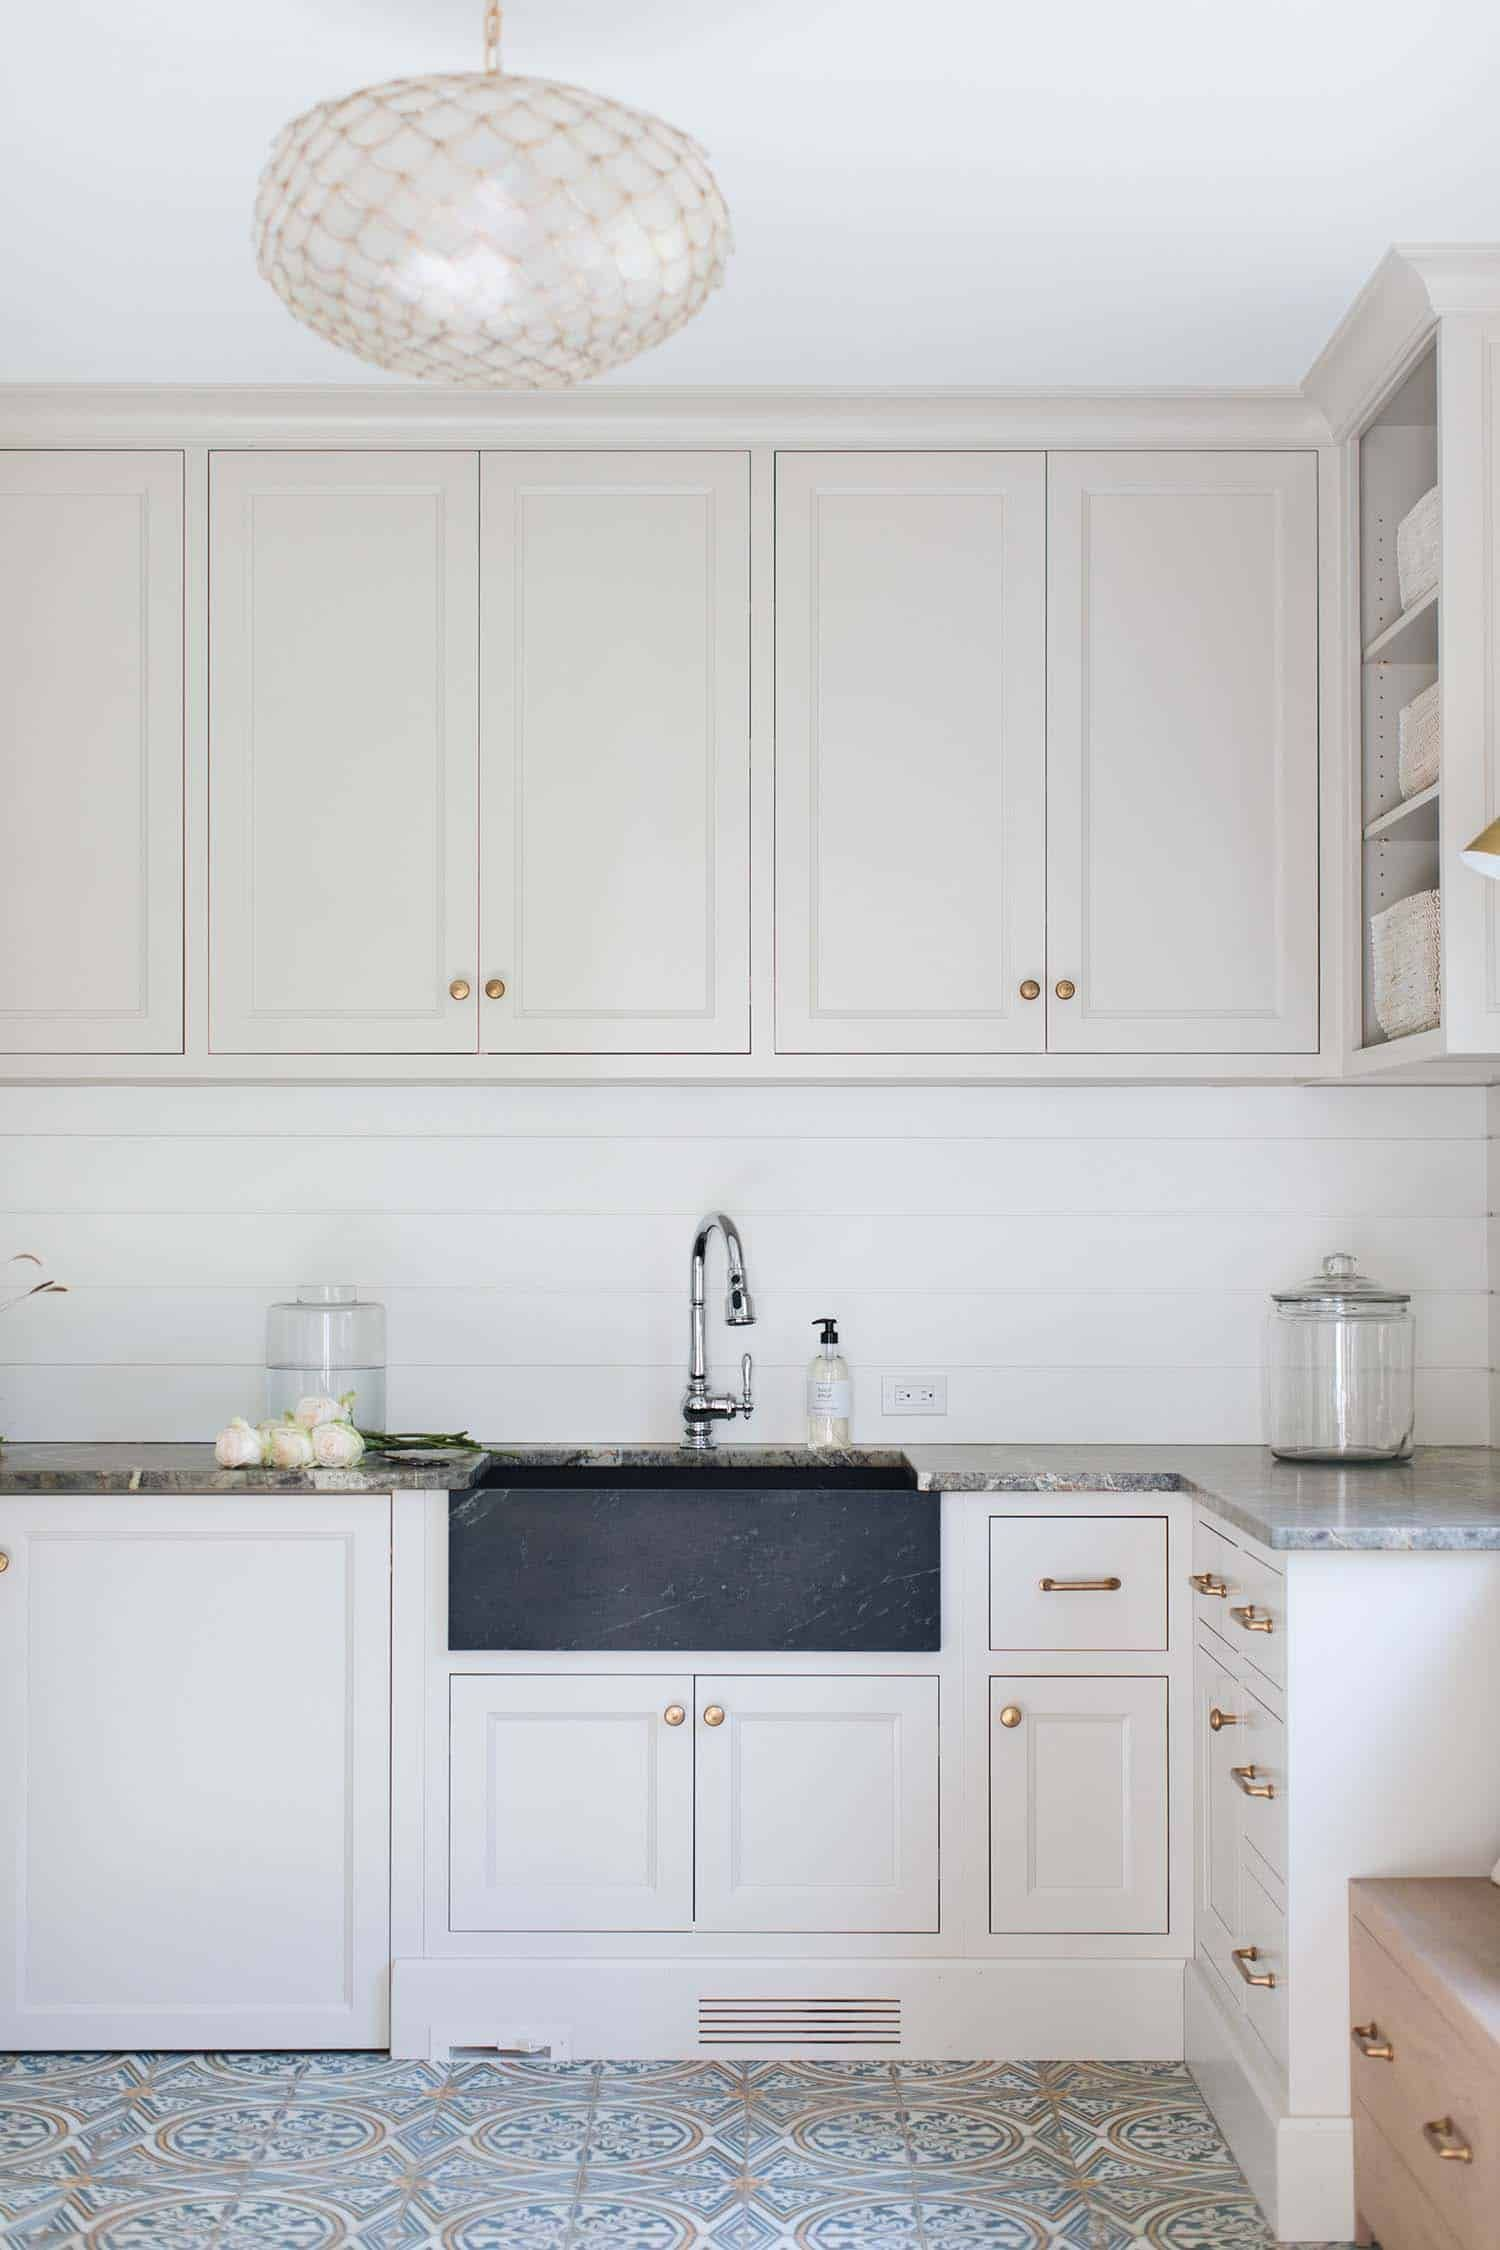 10x10 Laundry Room Layout: Delightful Modern Farmhouse Style Home Nestled In East